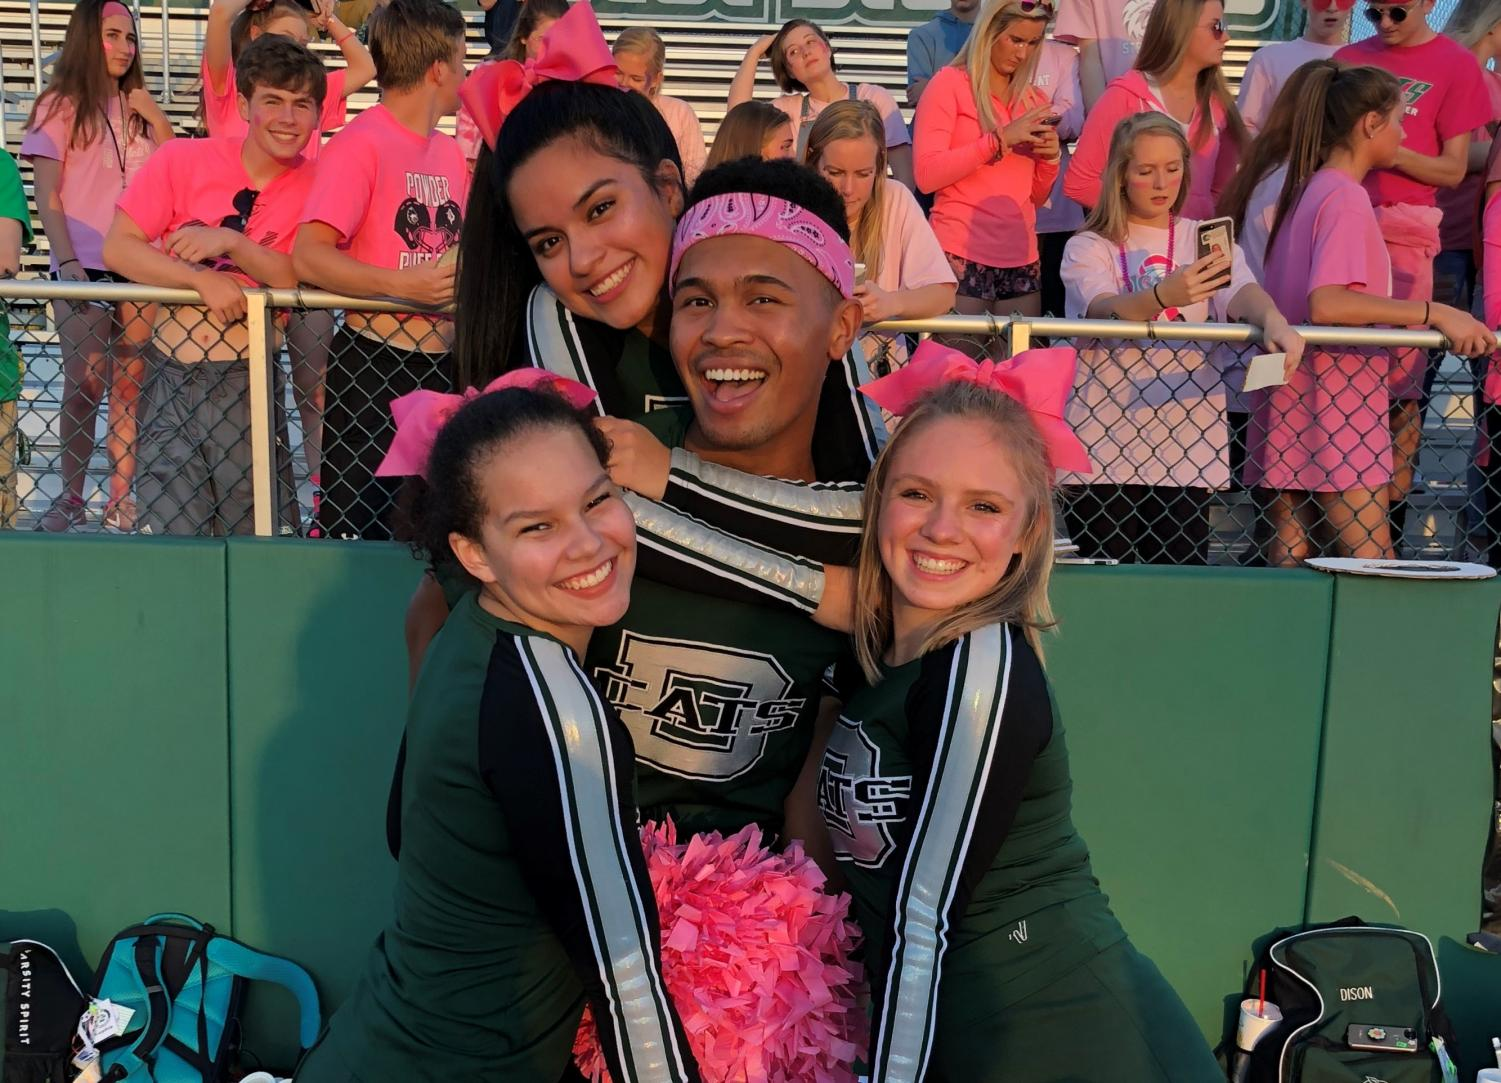 Senior captains Lexi Marshall, Aylin Rocha, Zekkiah Hird and Ellie Fowks pose for a photo prior to cheering at a home football game against Basehor-Linwood on Oct. 5.